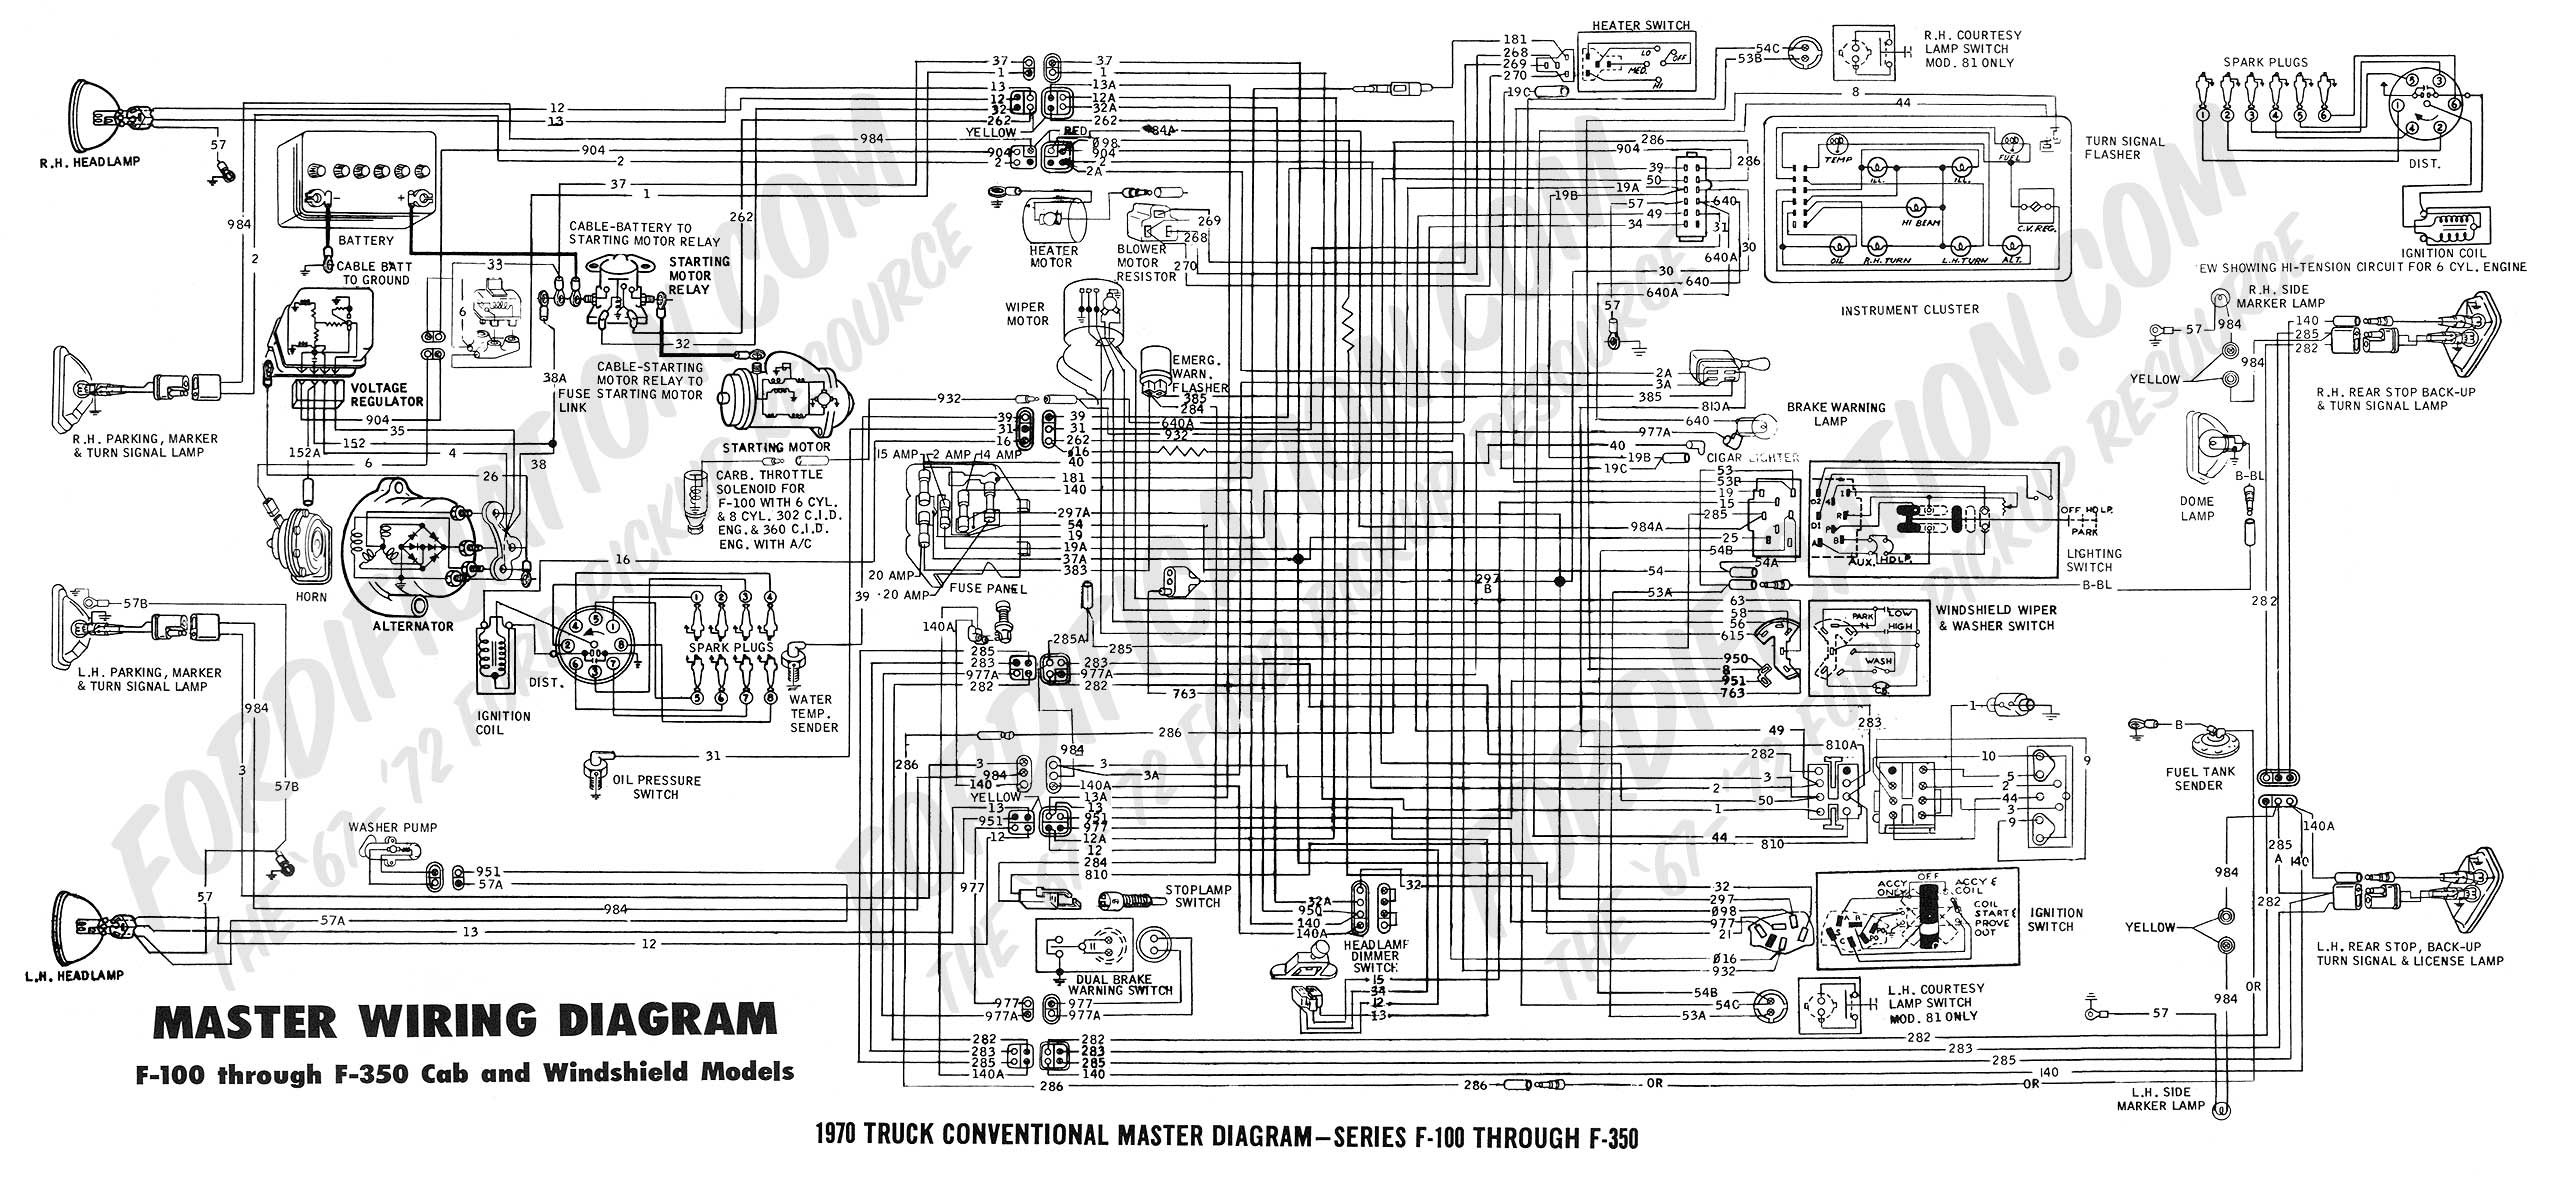 75 Dodge Steering Column Wiring Diagram Library 1972 Ford F100 Schematics Data Schema Box 1967 Truck